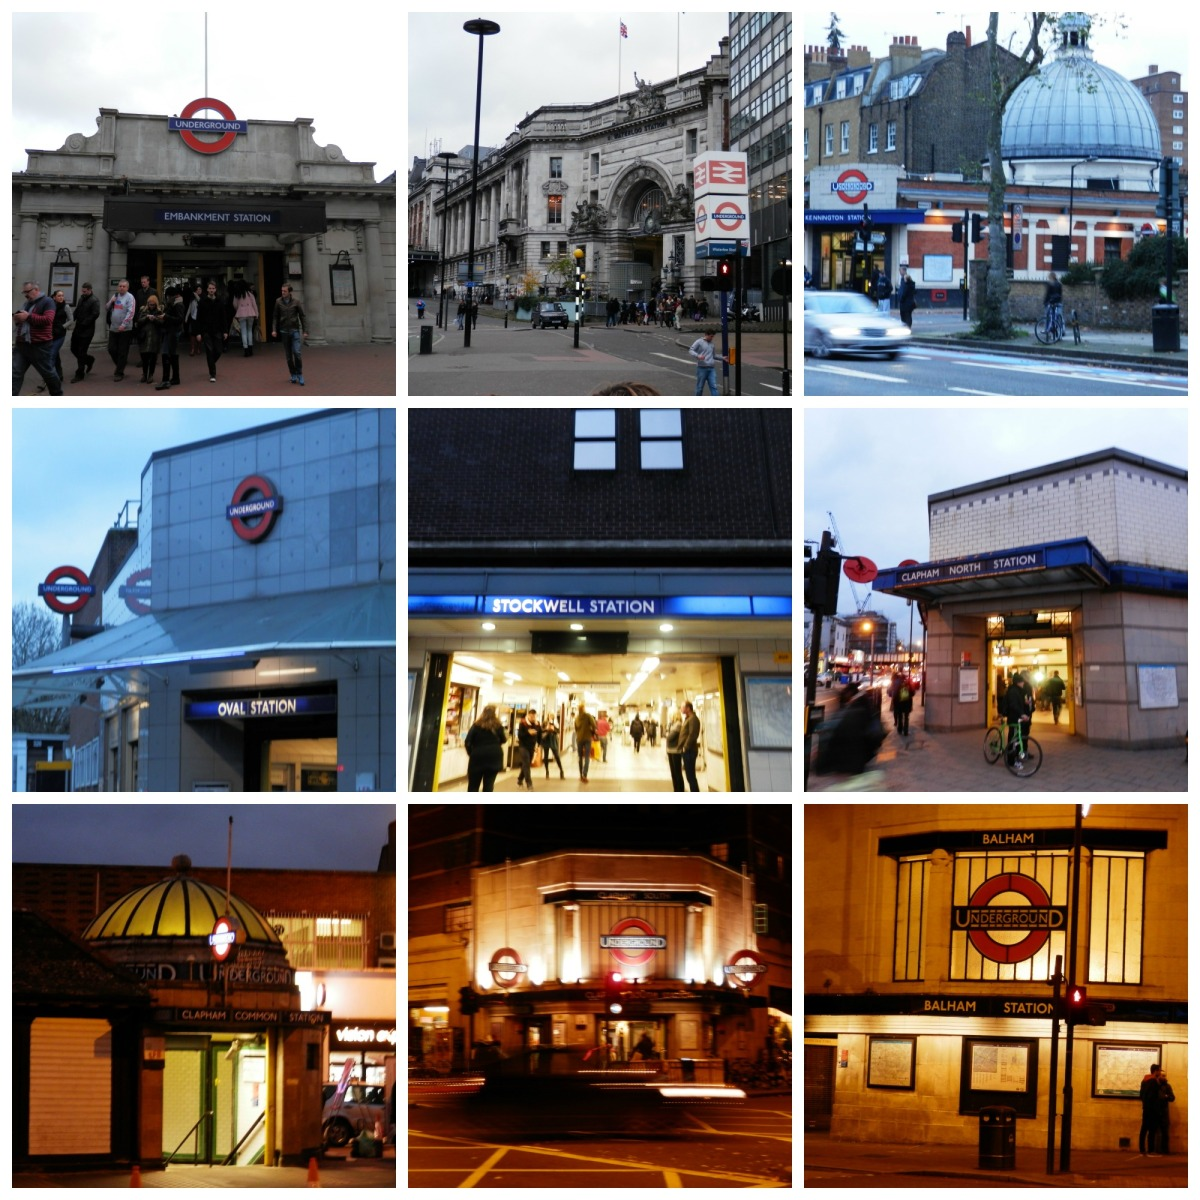 Walking the London Underground - the Northern Line